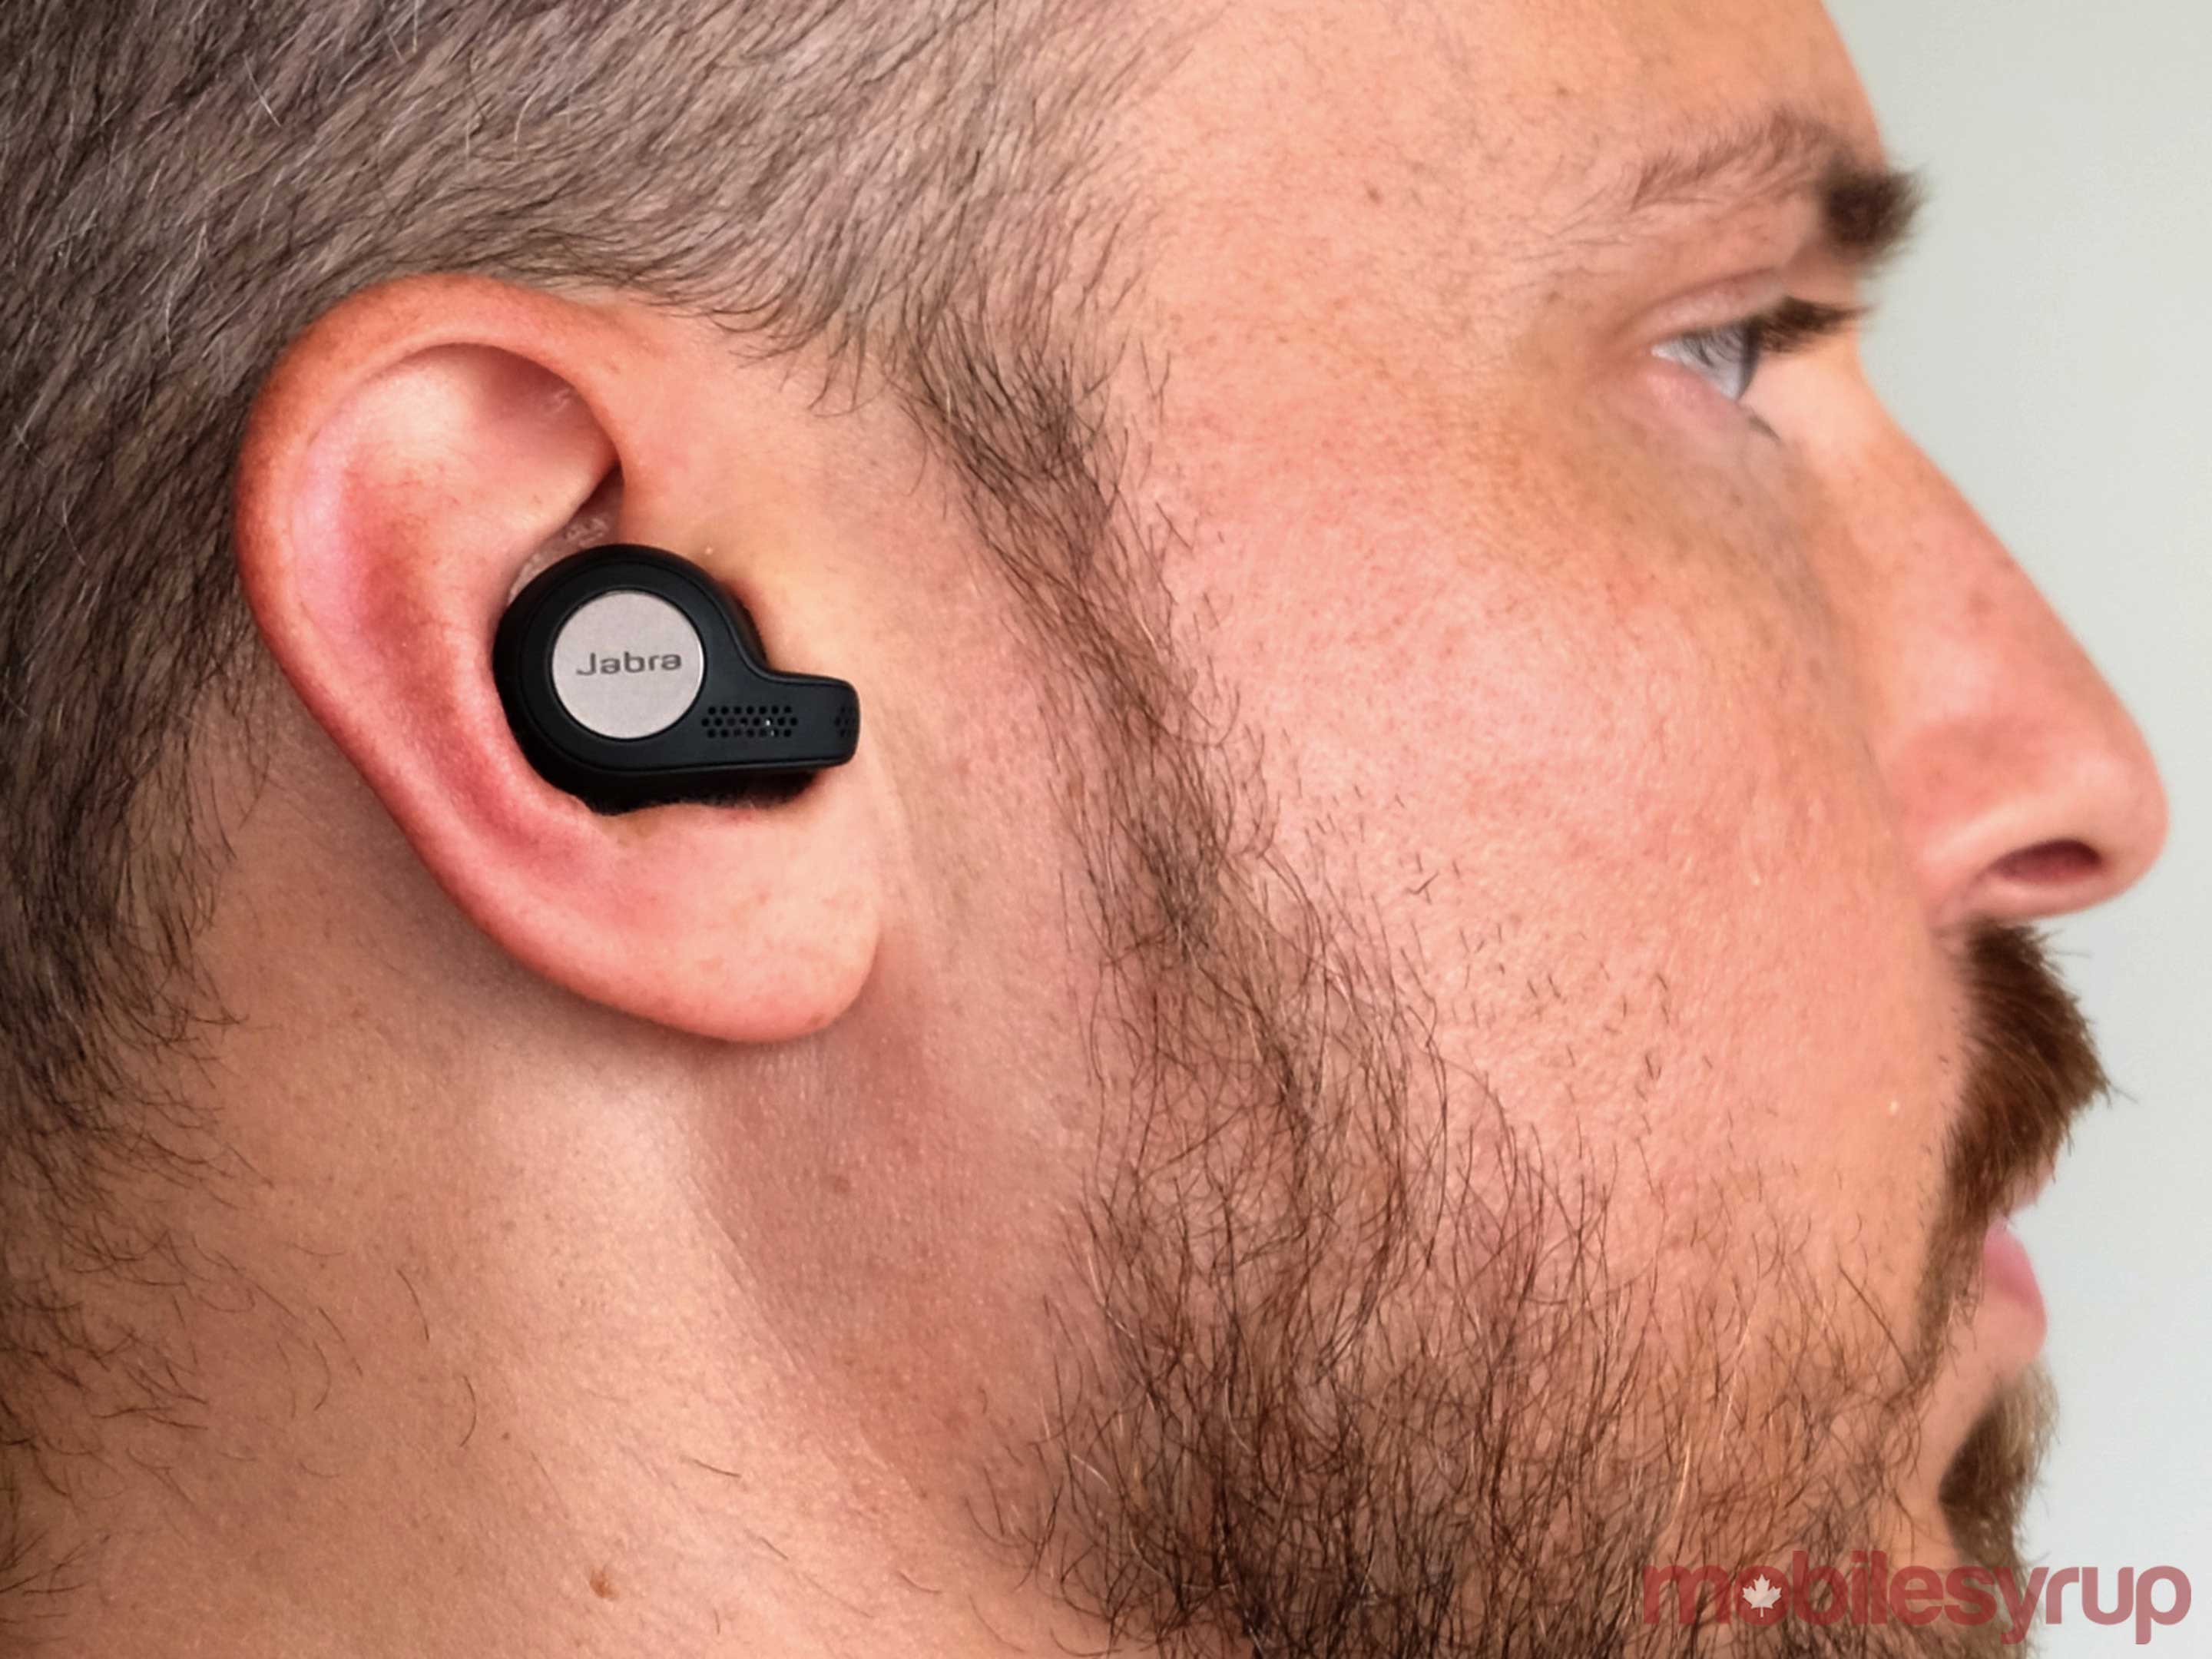 Jabra Elite 65t and Elite Active 65t Review: Beating Apple's